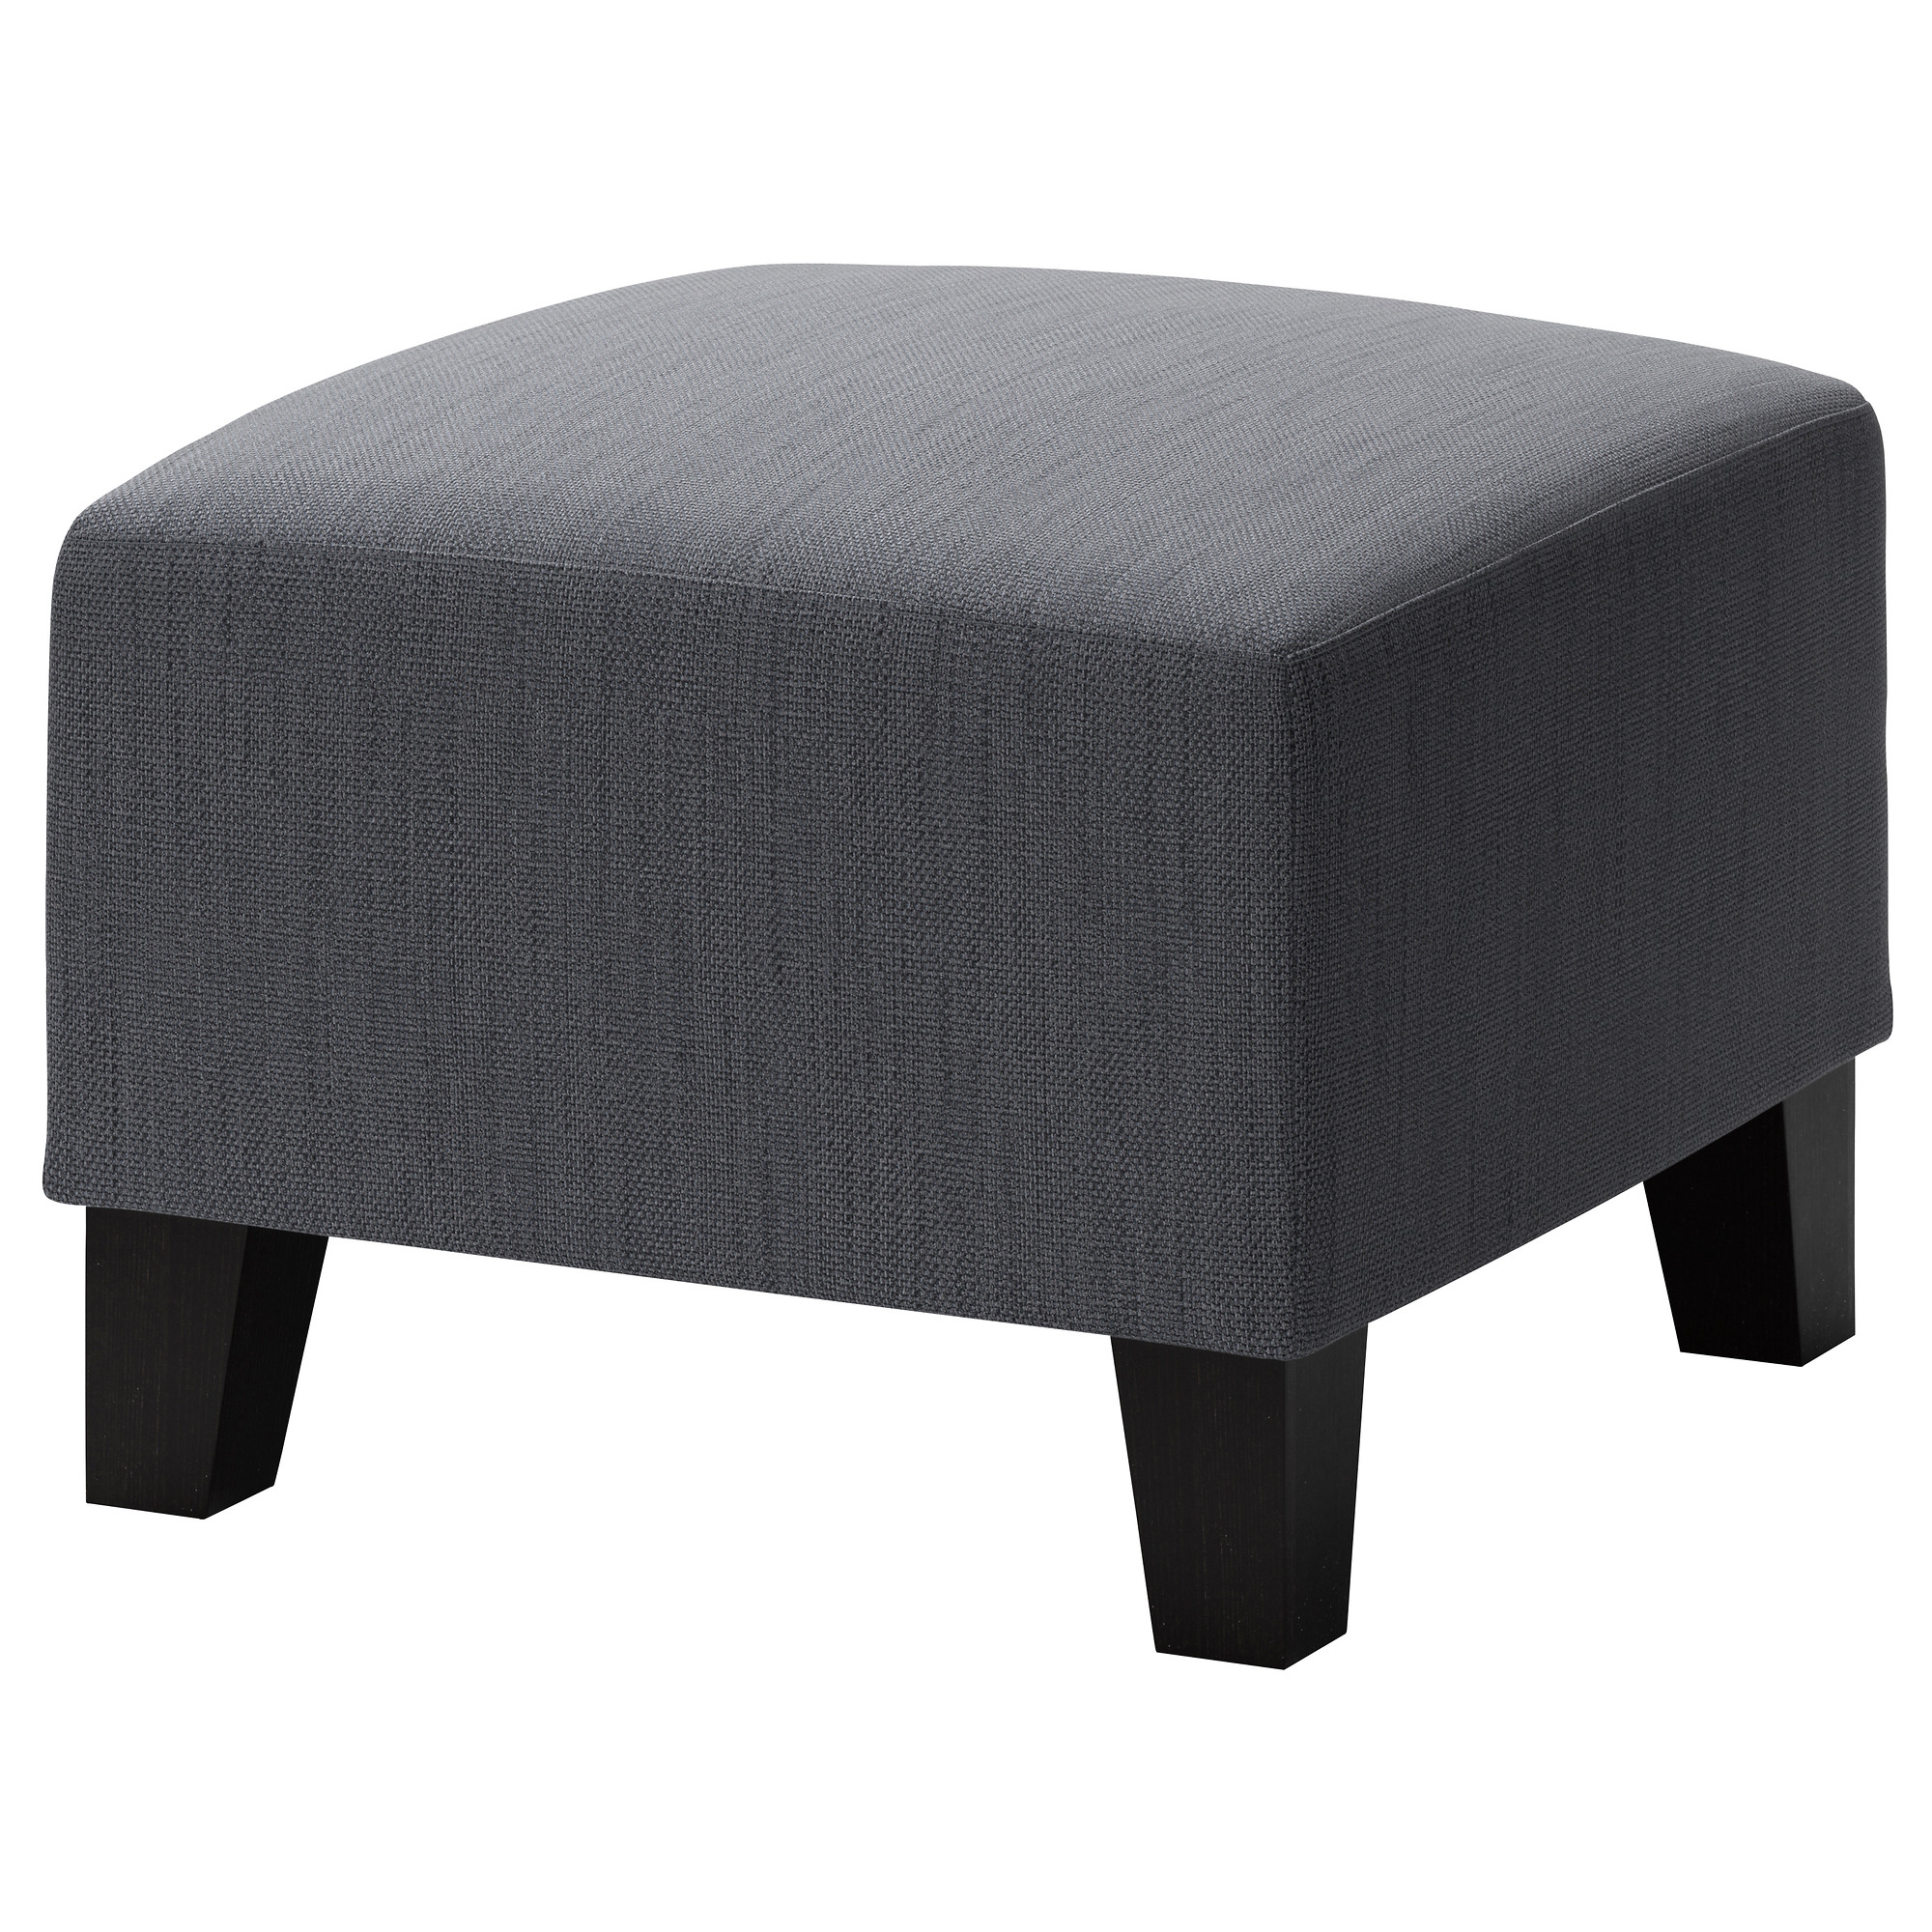 ikea ekenäs footstool hardwearing cover of chenille quality with a slight  sheen KBMOOZB